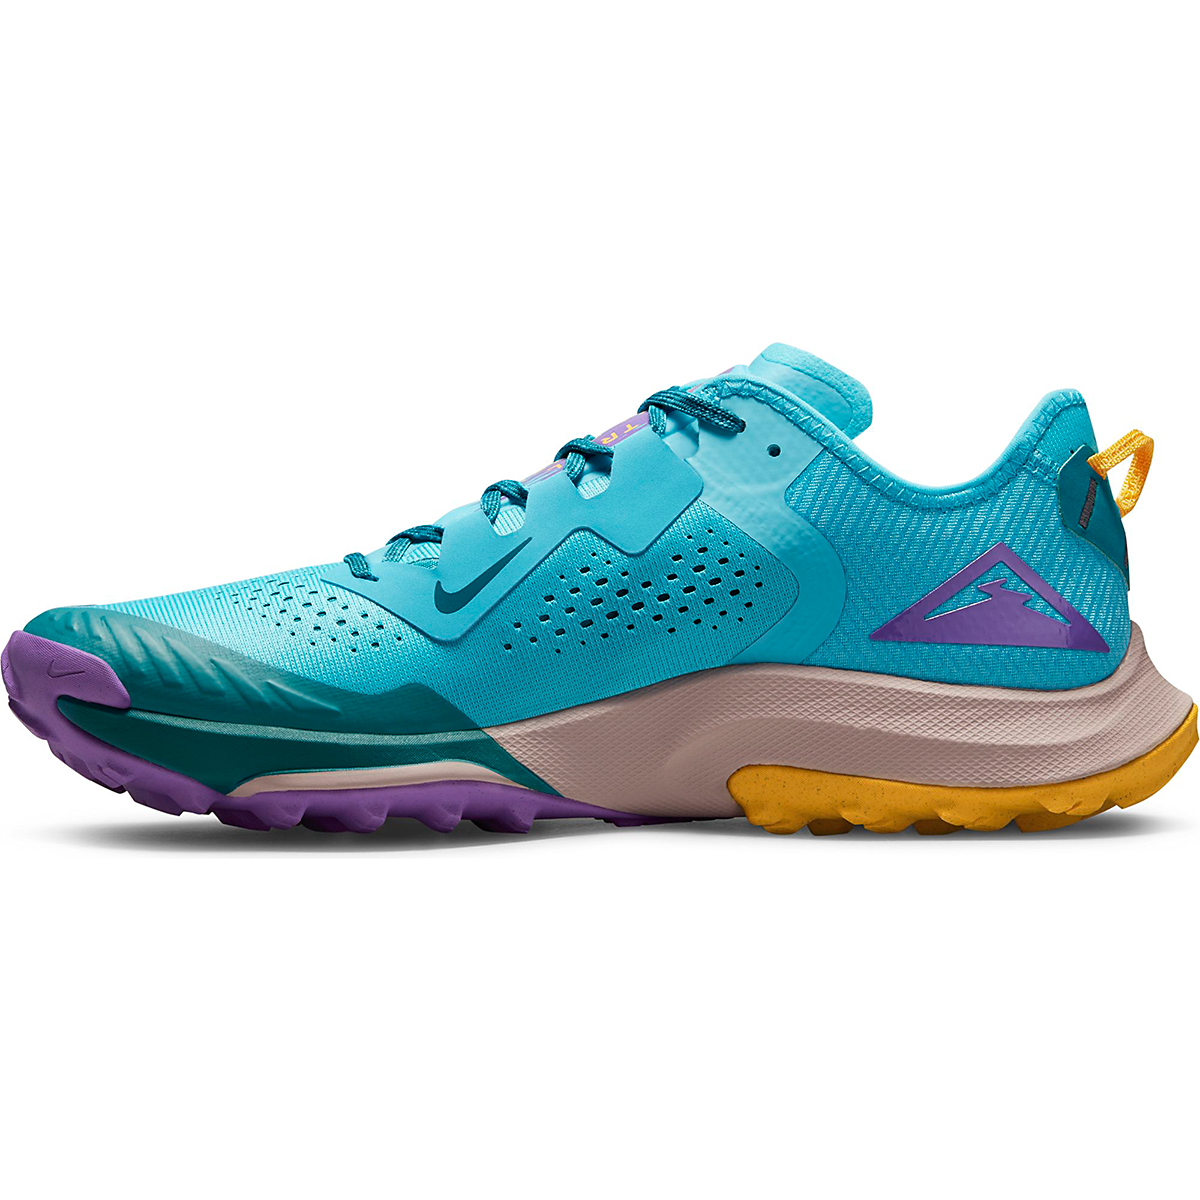 Men's Nike Air Zoom Terra Kiger 7 Trail Running Shoe - Color: Turquoise Blue/White/Mystic Teal - Size: 6 - Width: Regular, Turquoise Blue/White/Mystic Teal, large, image 2